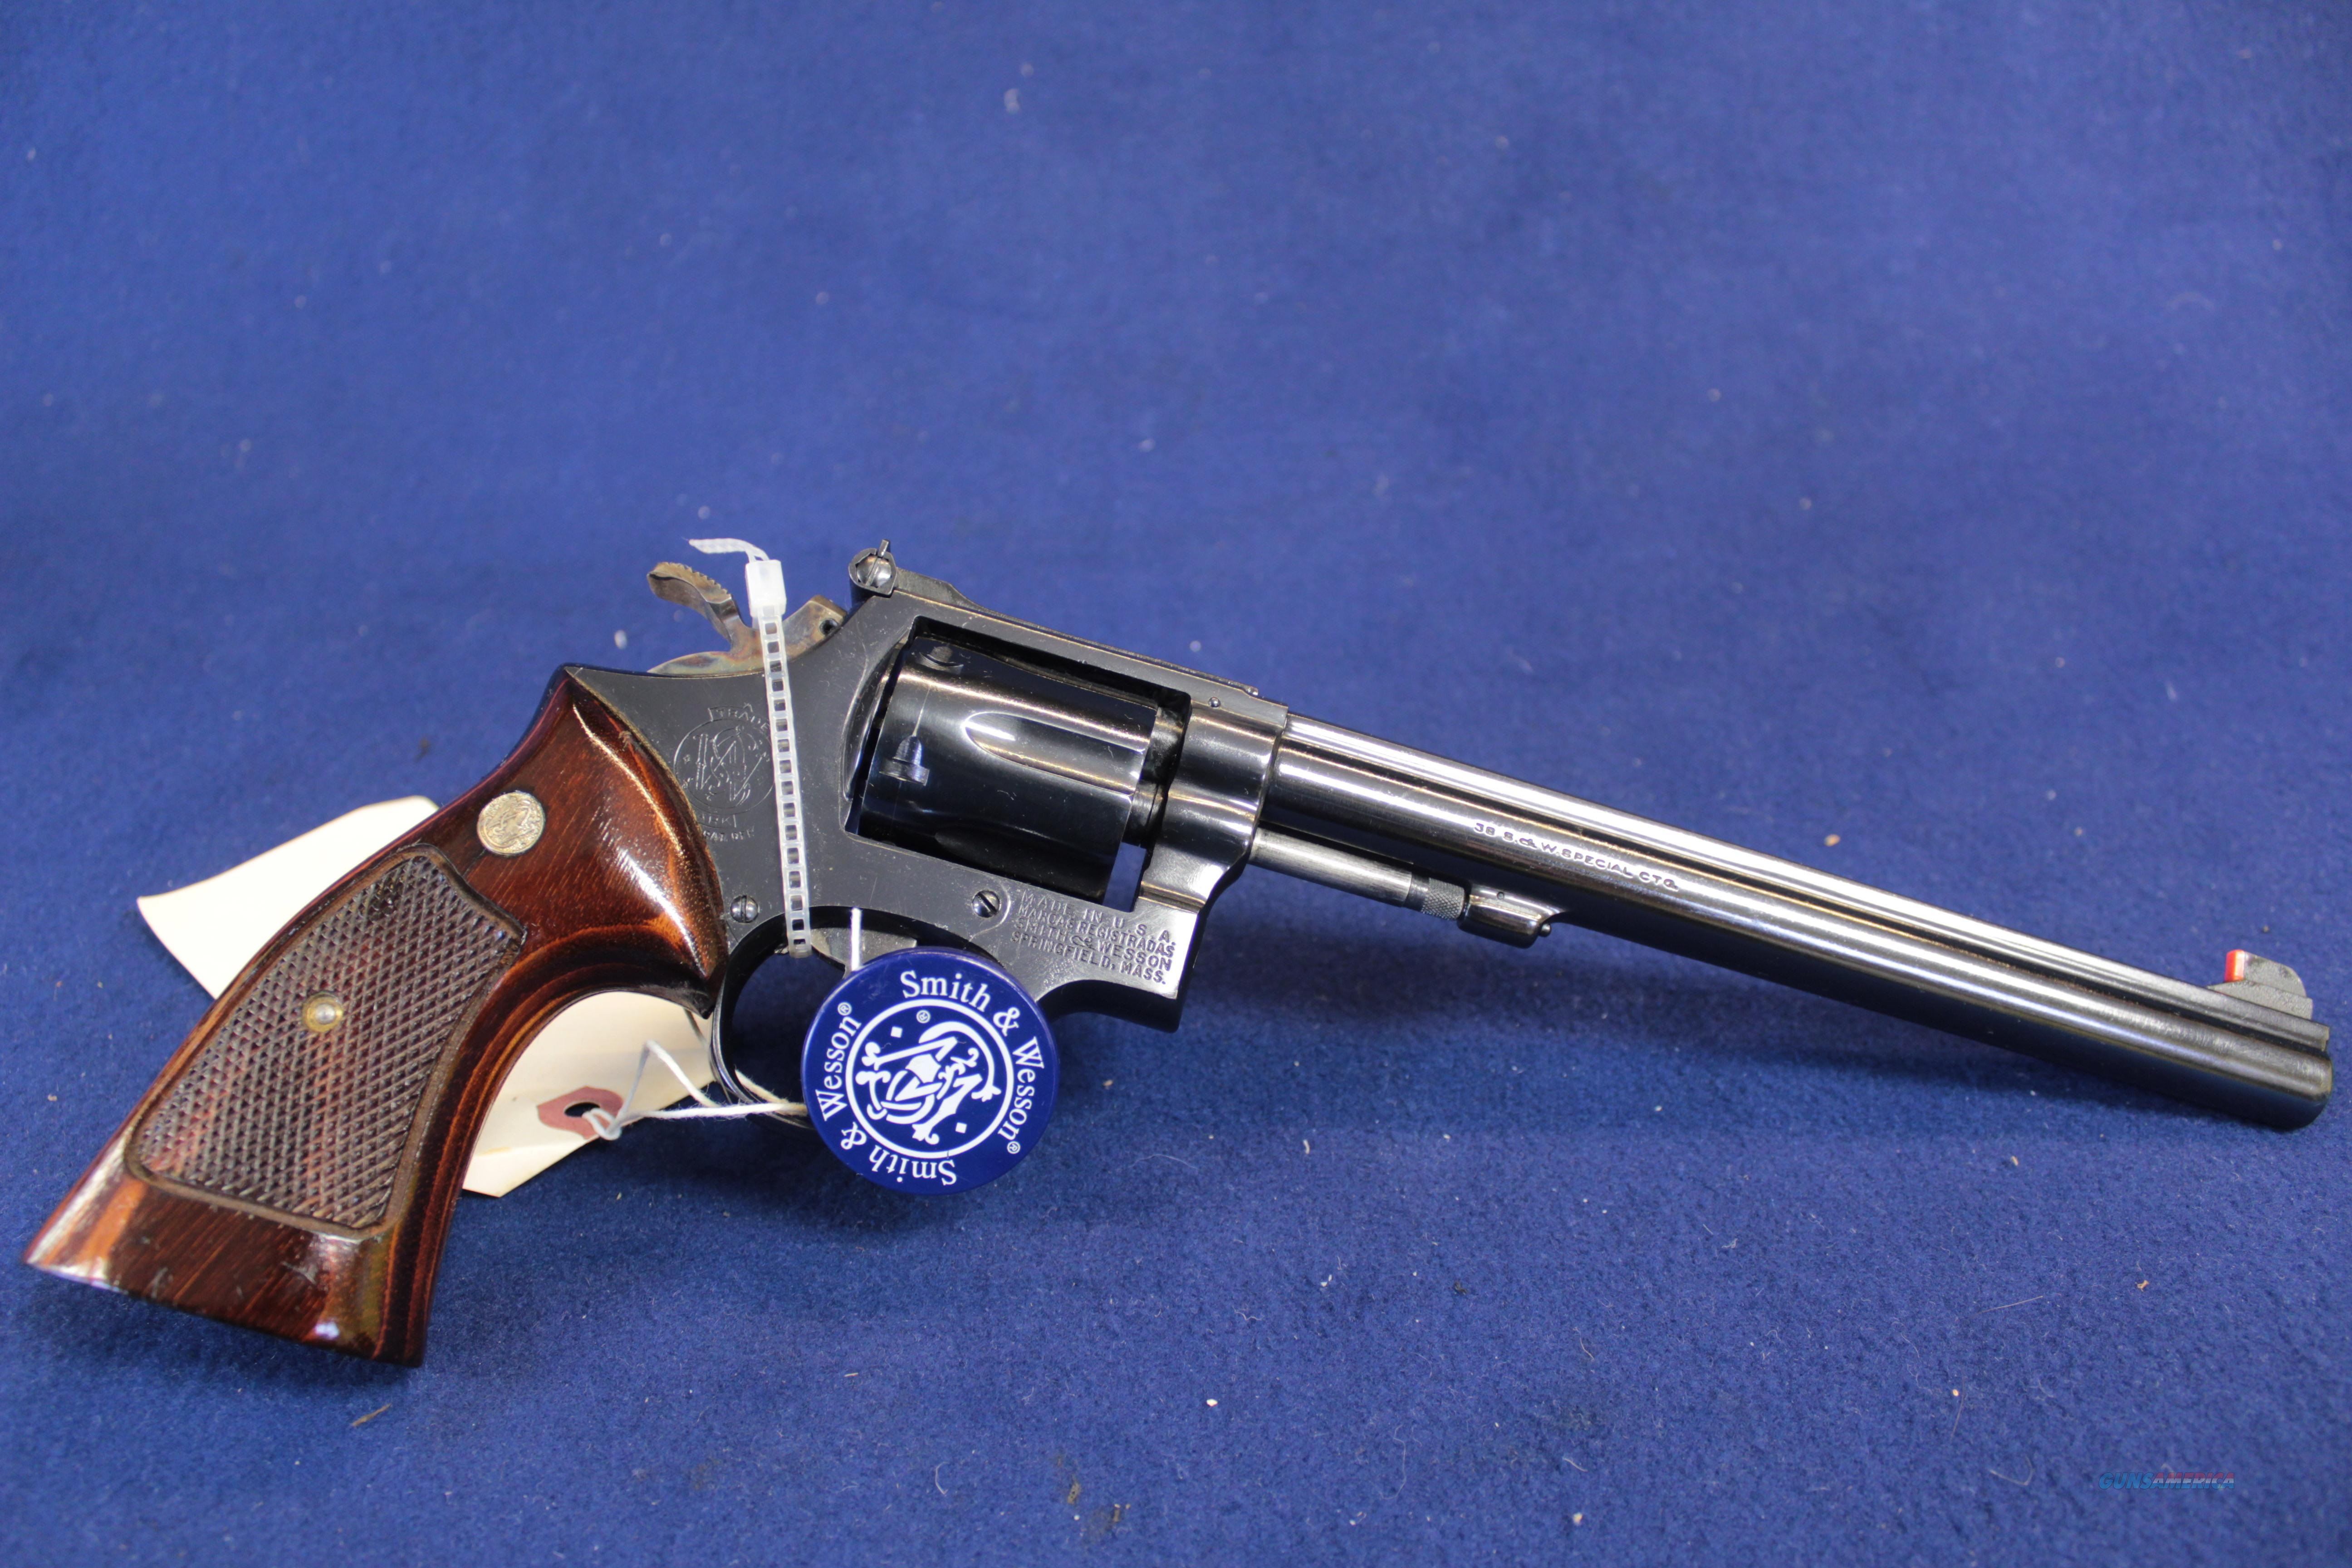 "Very Fine Smith & Wesson 14-2 3t's 8 3/8""  Guns > Pistols > Smith & Wesson Revolvers > Full Frame Revolver"